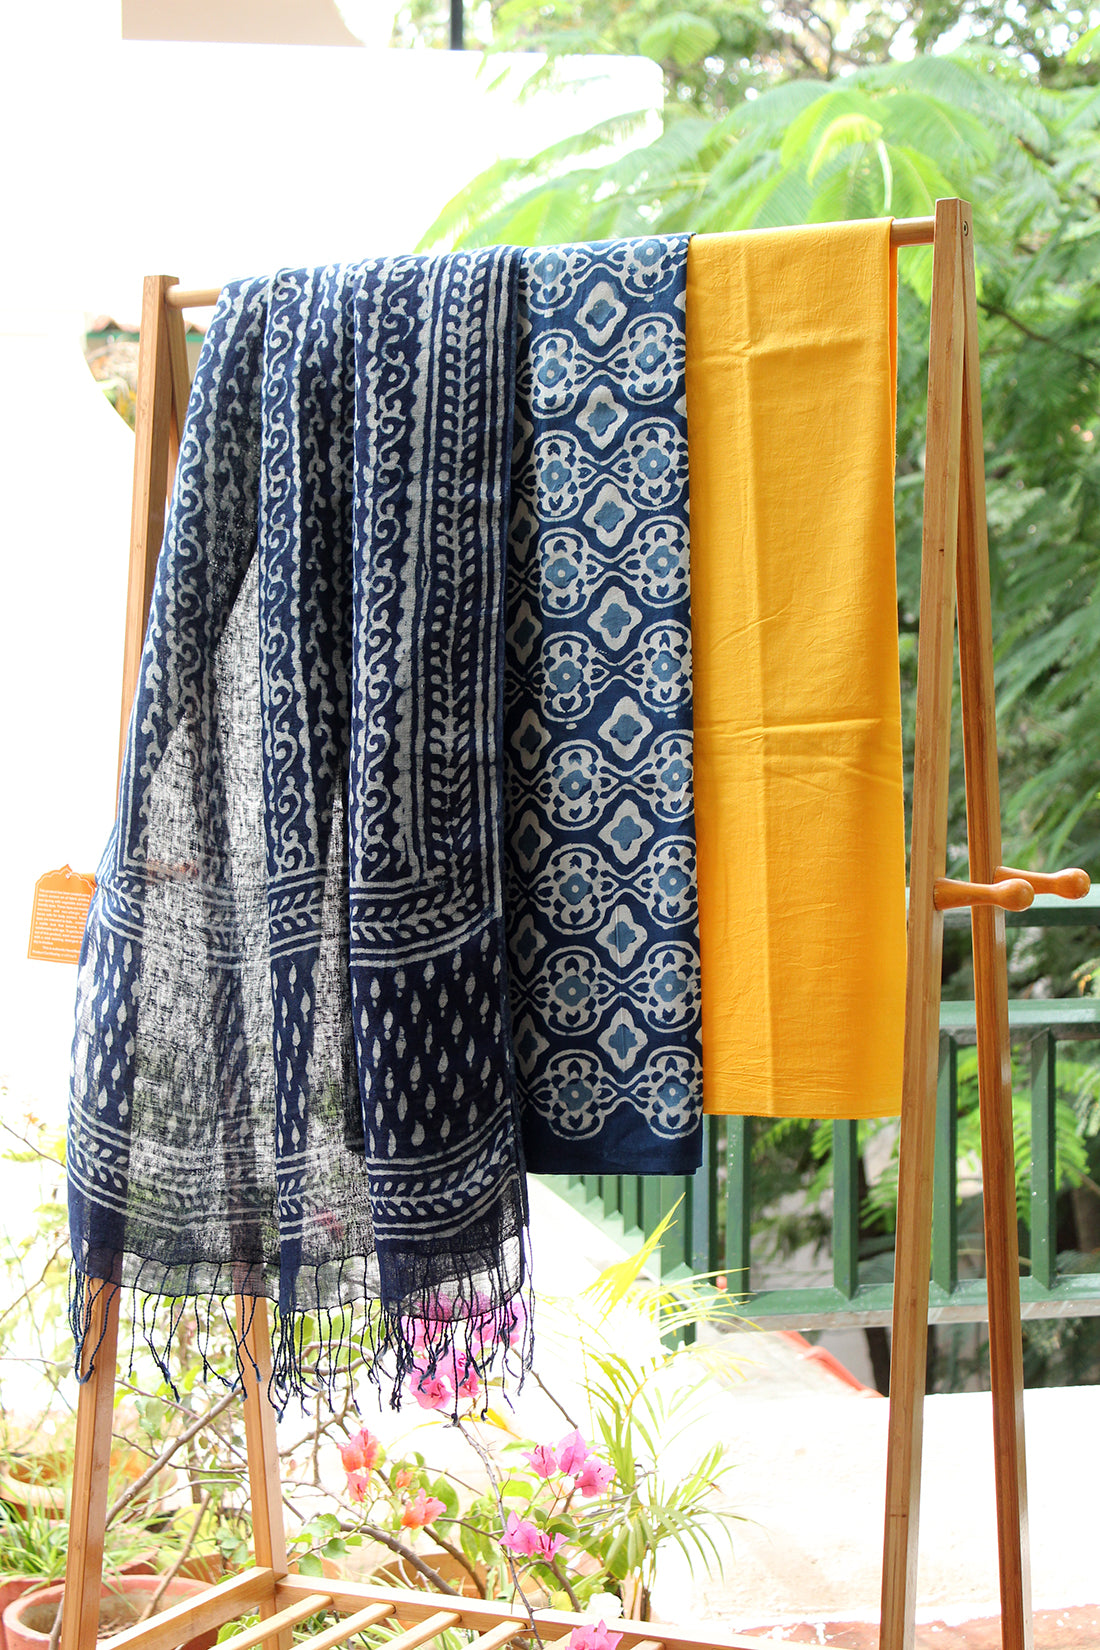 Indigo Handloom Linen Hand Block Printed Dupatta with Indigo and Yellow Cotton Dress Material